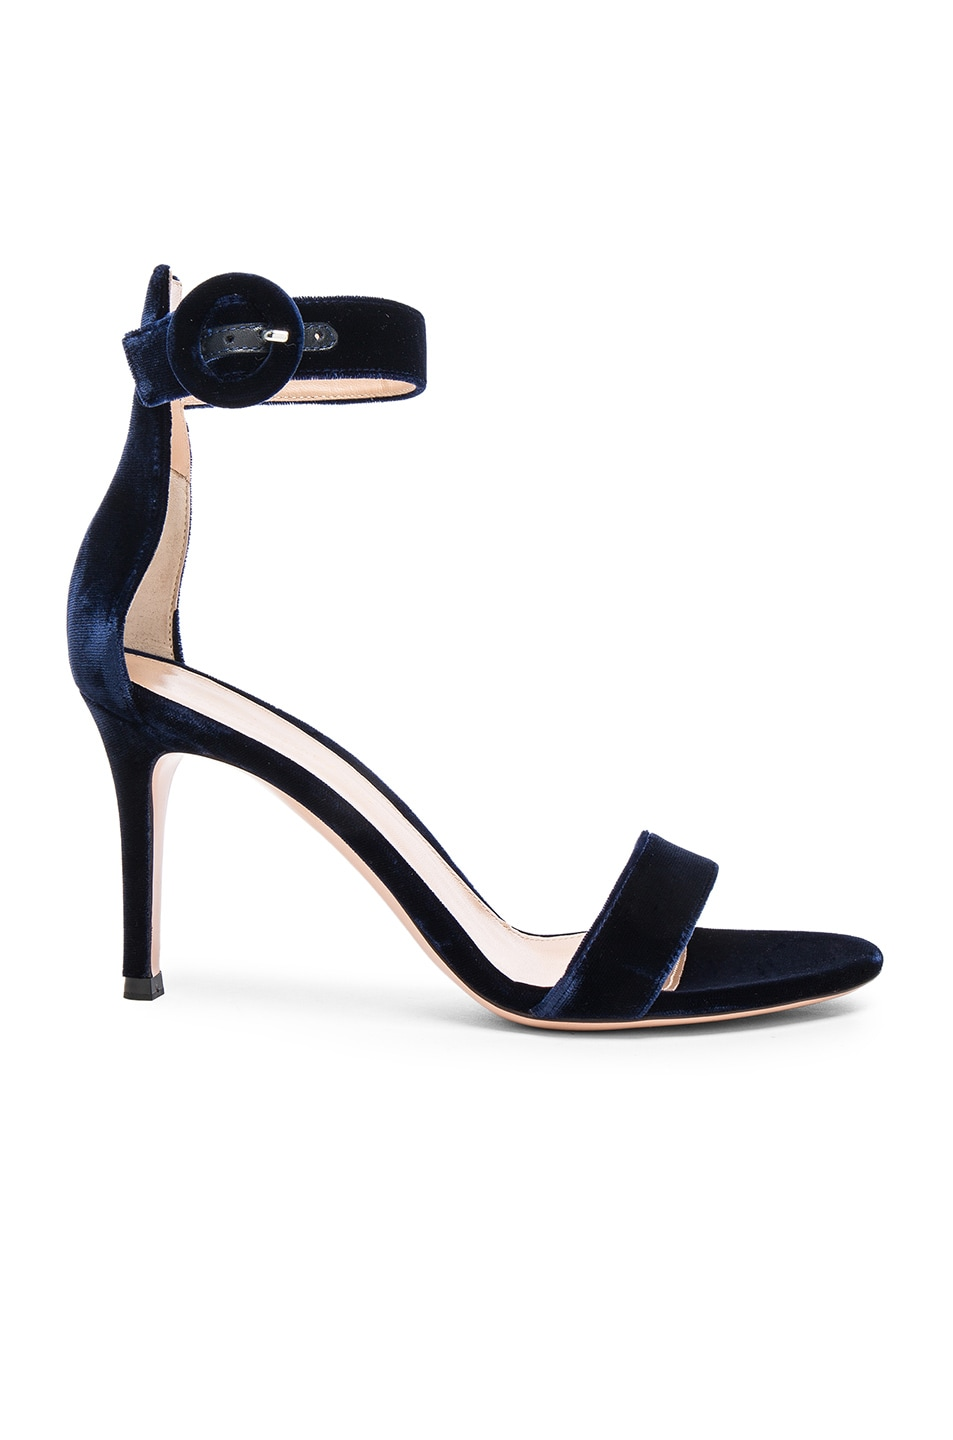 Gianvito Rossi For FWRD Velvet Portofino Heels in .